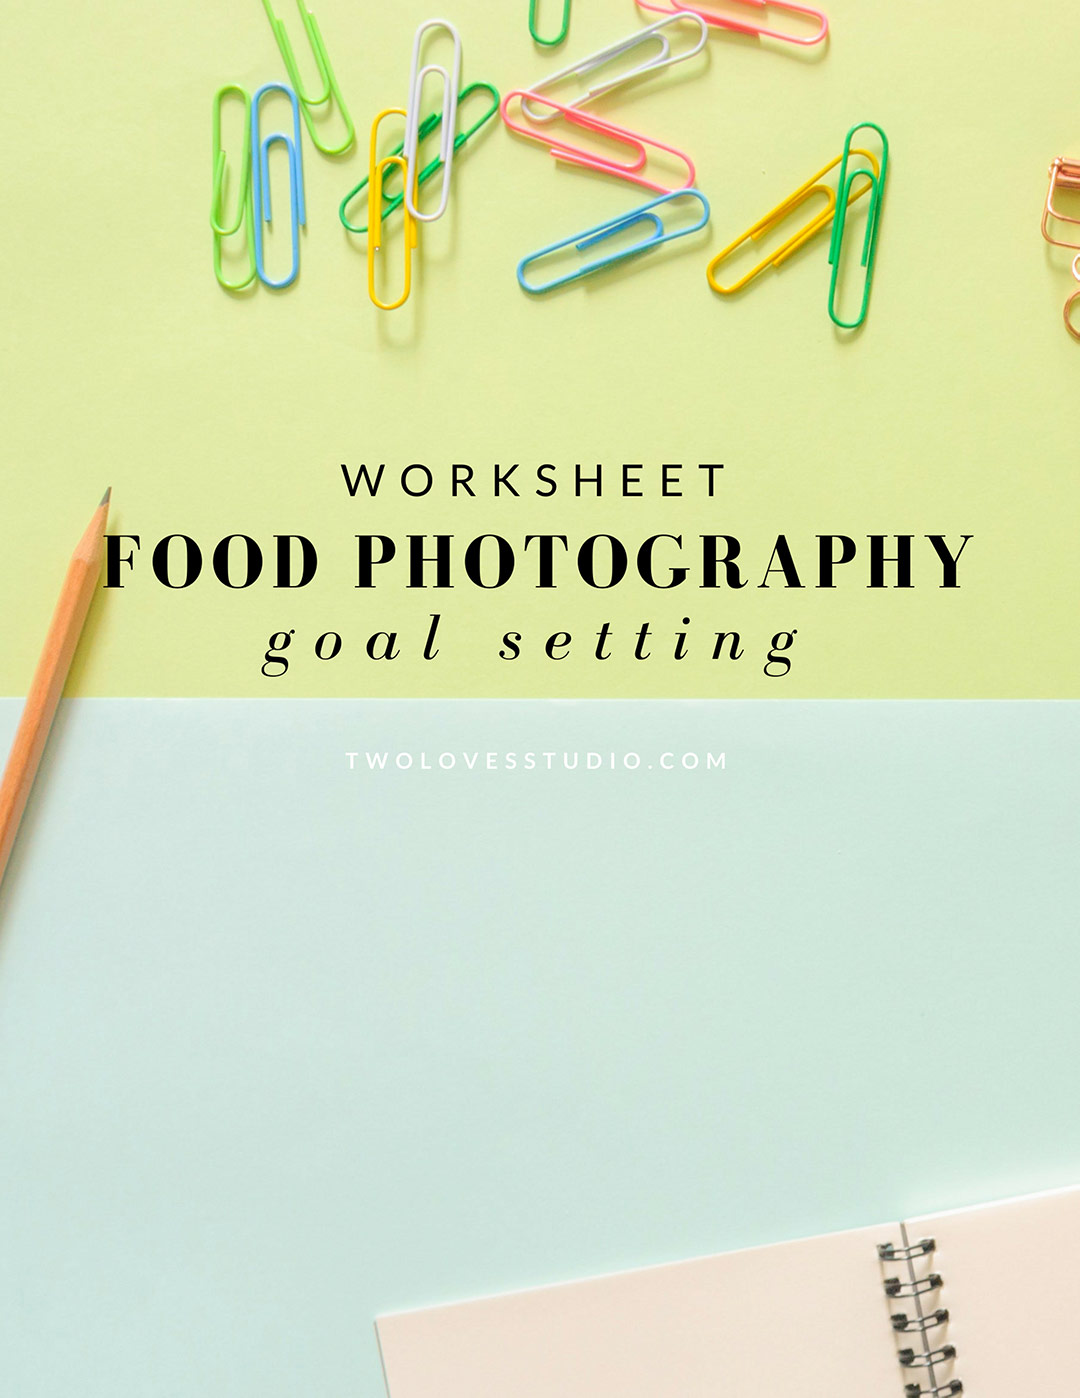 Food Photography Goal Setting Worksheet - Land Your Dream Photoshoot 2